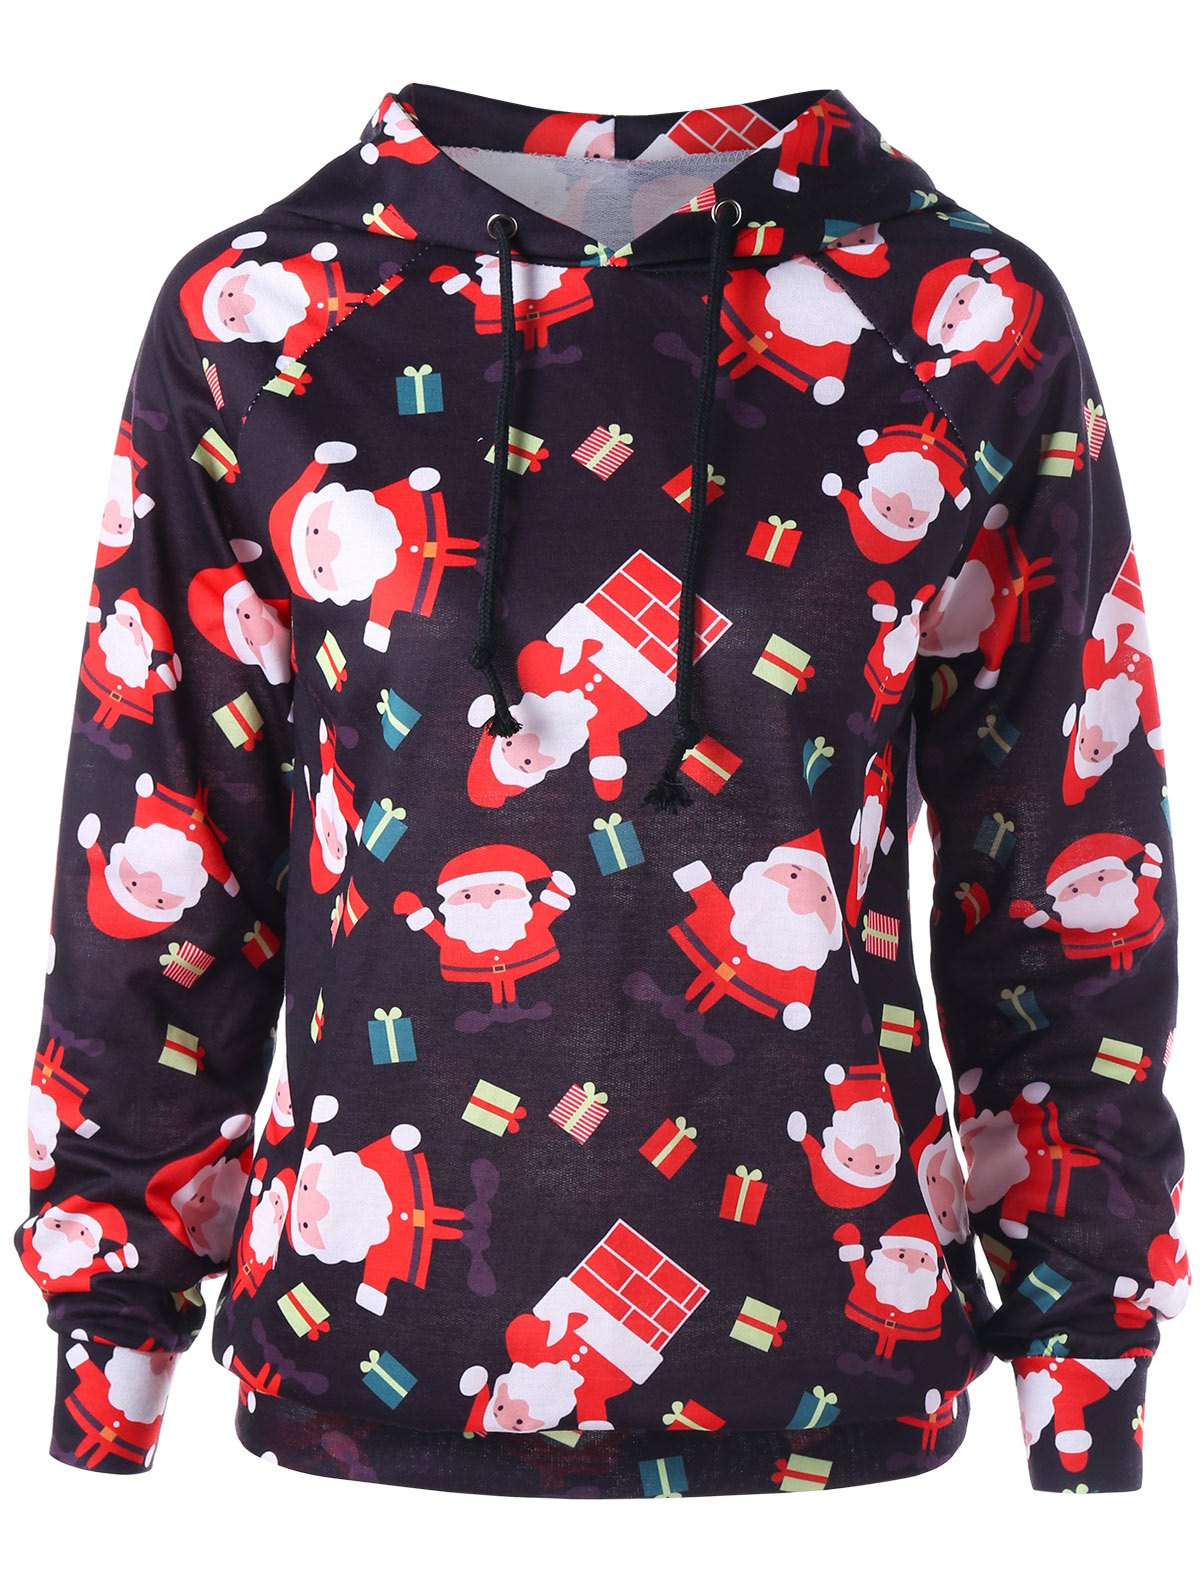 Santa Claus Raglan Sleeve Christmas HoodieWOMEN<br><br>Size: L; Color: RED; Material: Polyester,Spandex; Shirt Length: Regular; Sleeve Length: Full; Style: Fashion; Pattern Style: Print; Season: Fall,Spring; Weight: 0.4500kg; Package Contents: 1 x Hoodie;